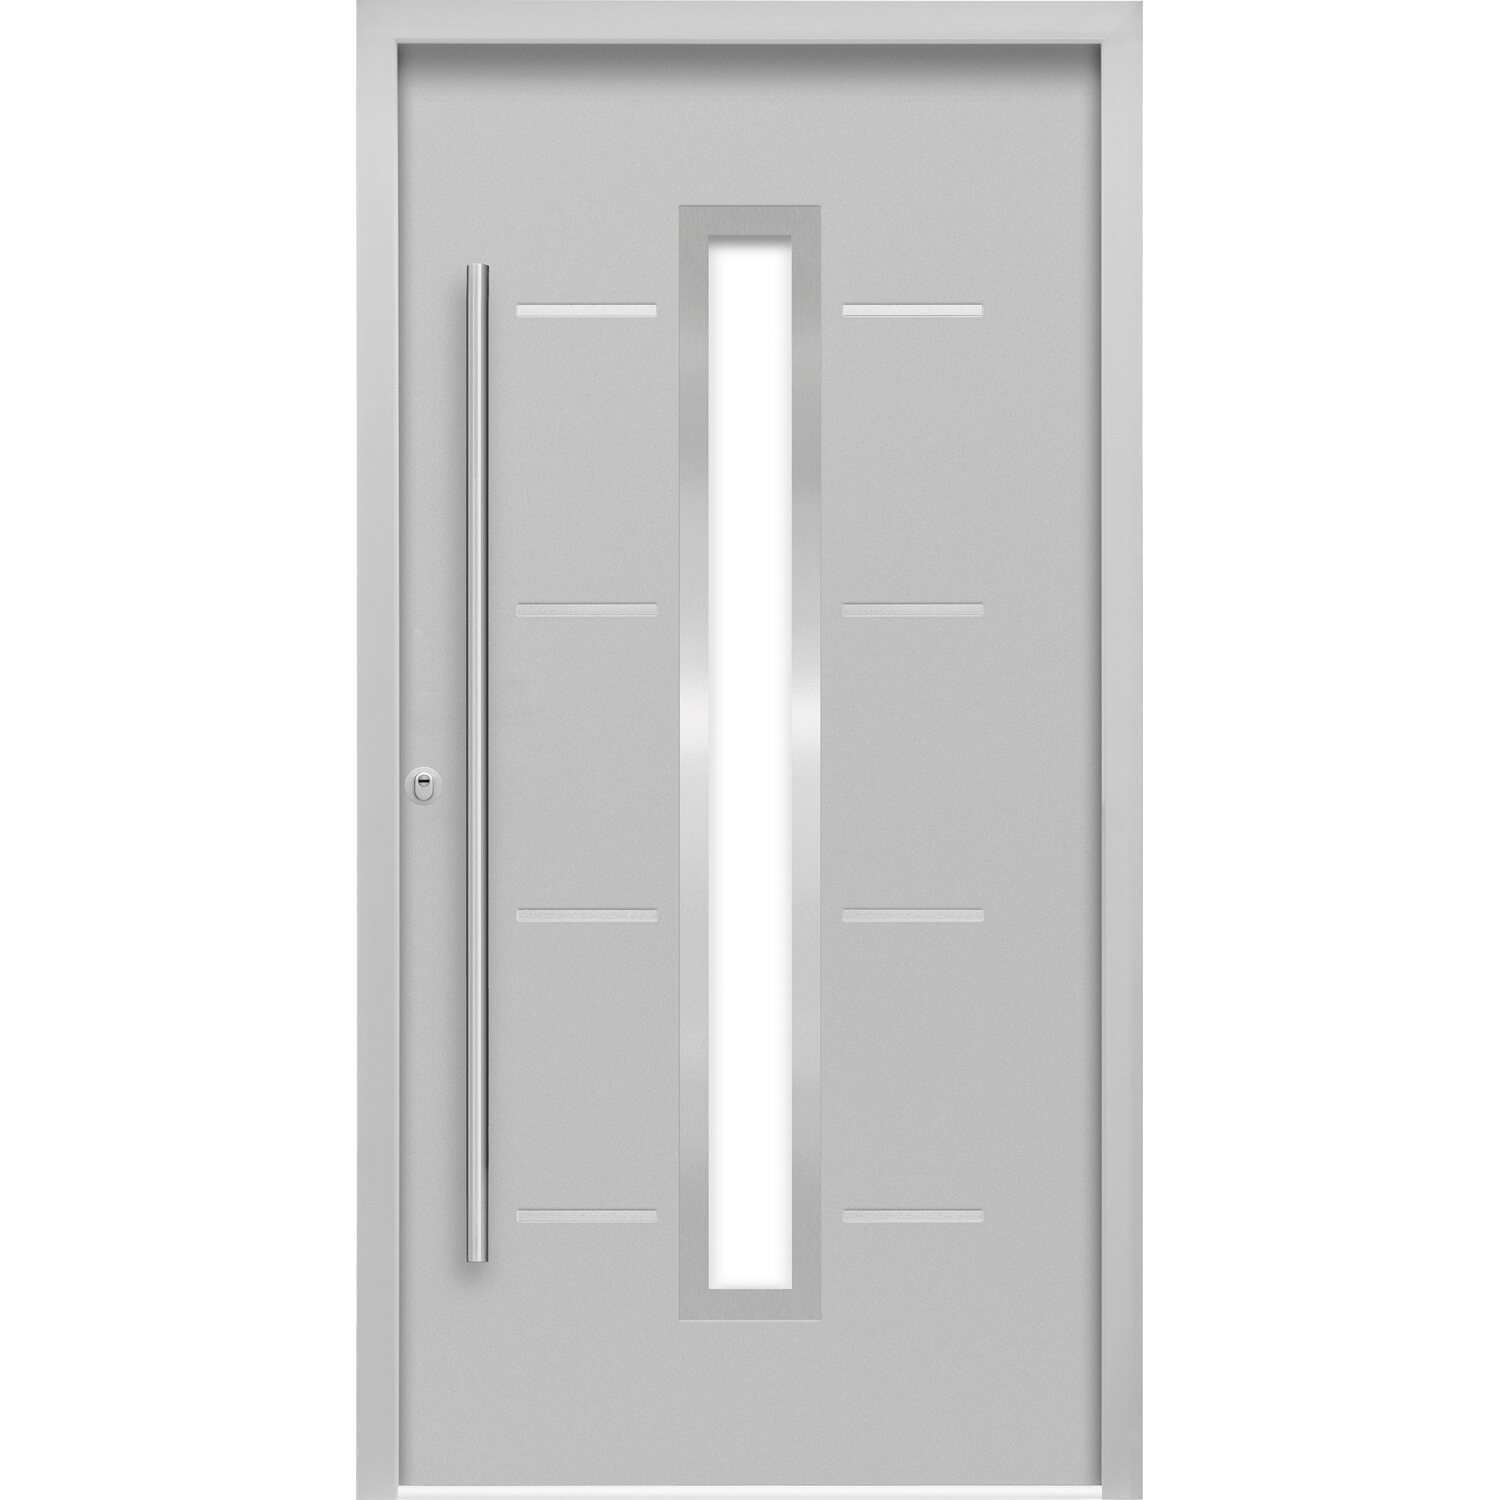 Sicherheits-Haustür ThermoSpace Milano RC2 Komfort 110 x 210 cm Grau Links